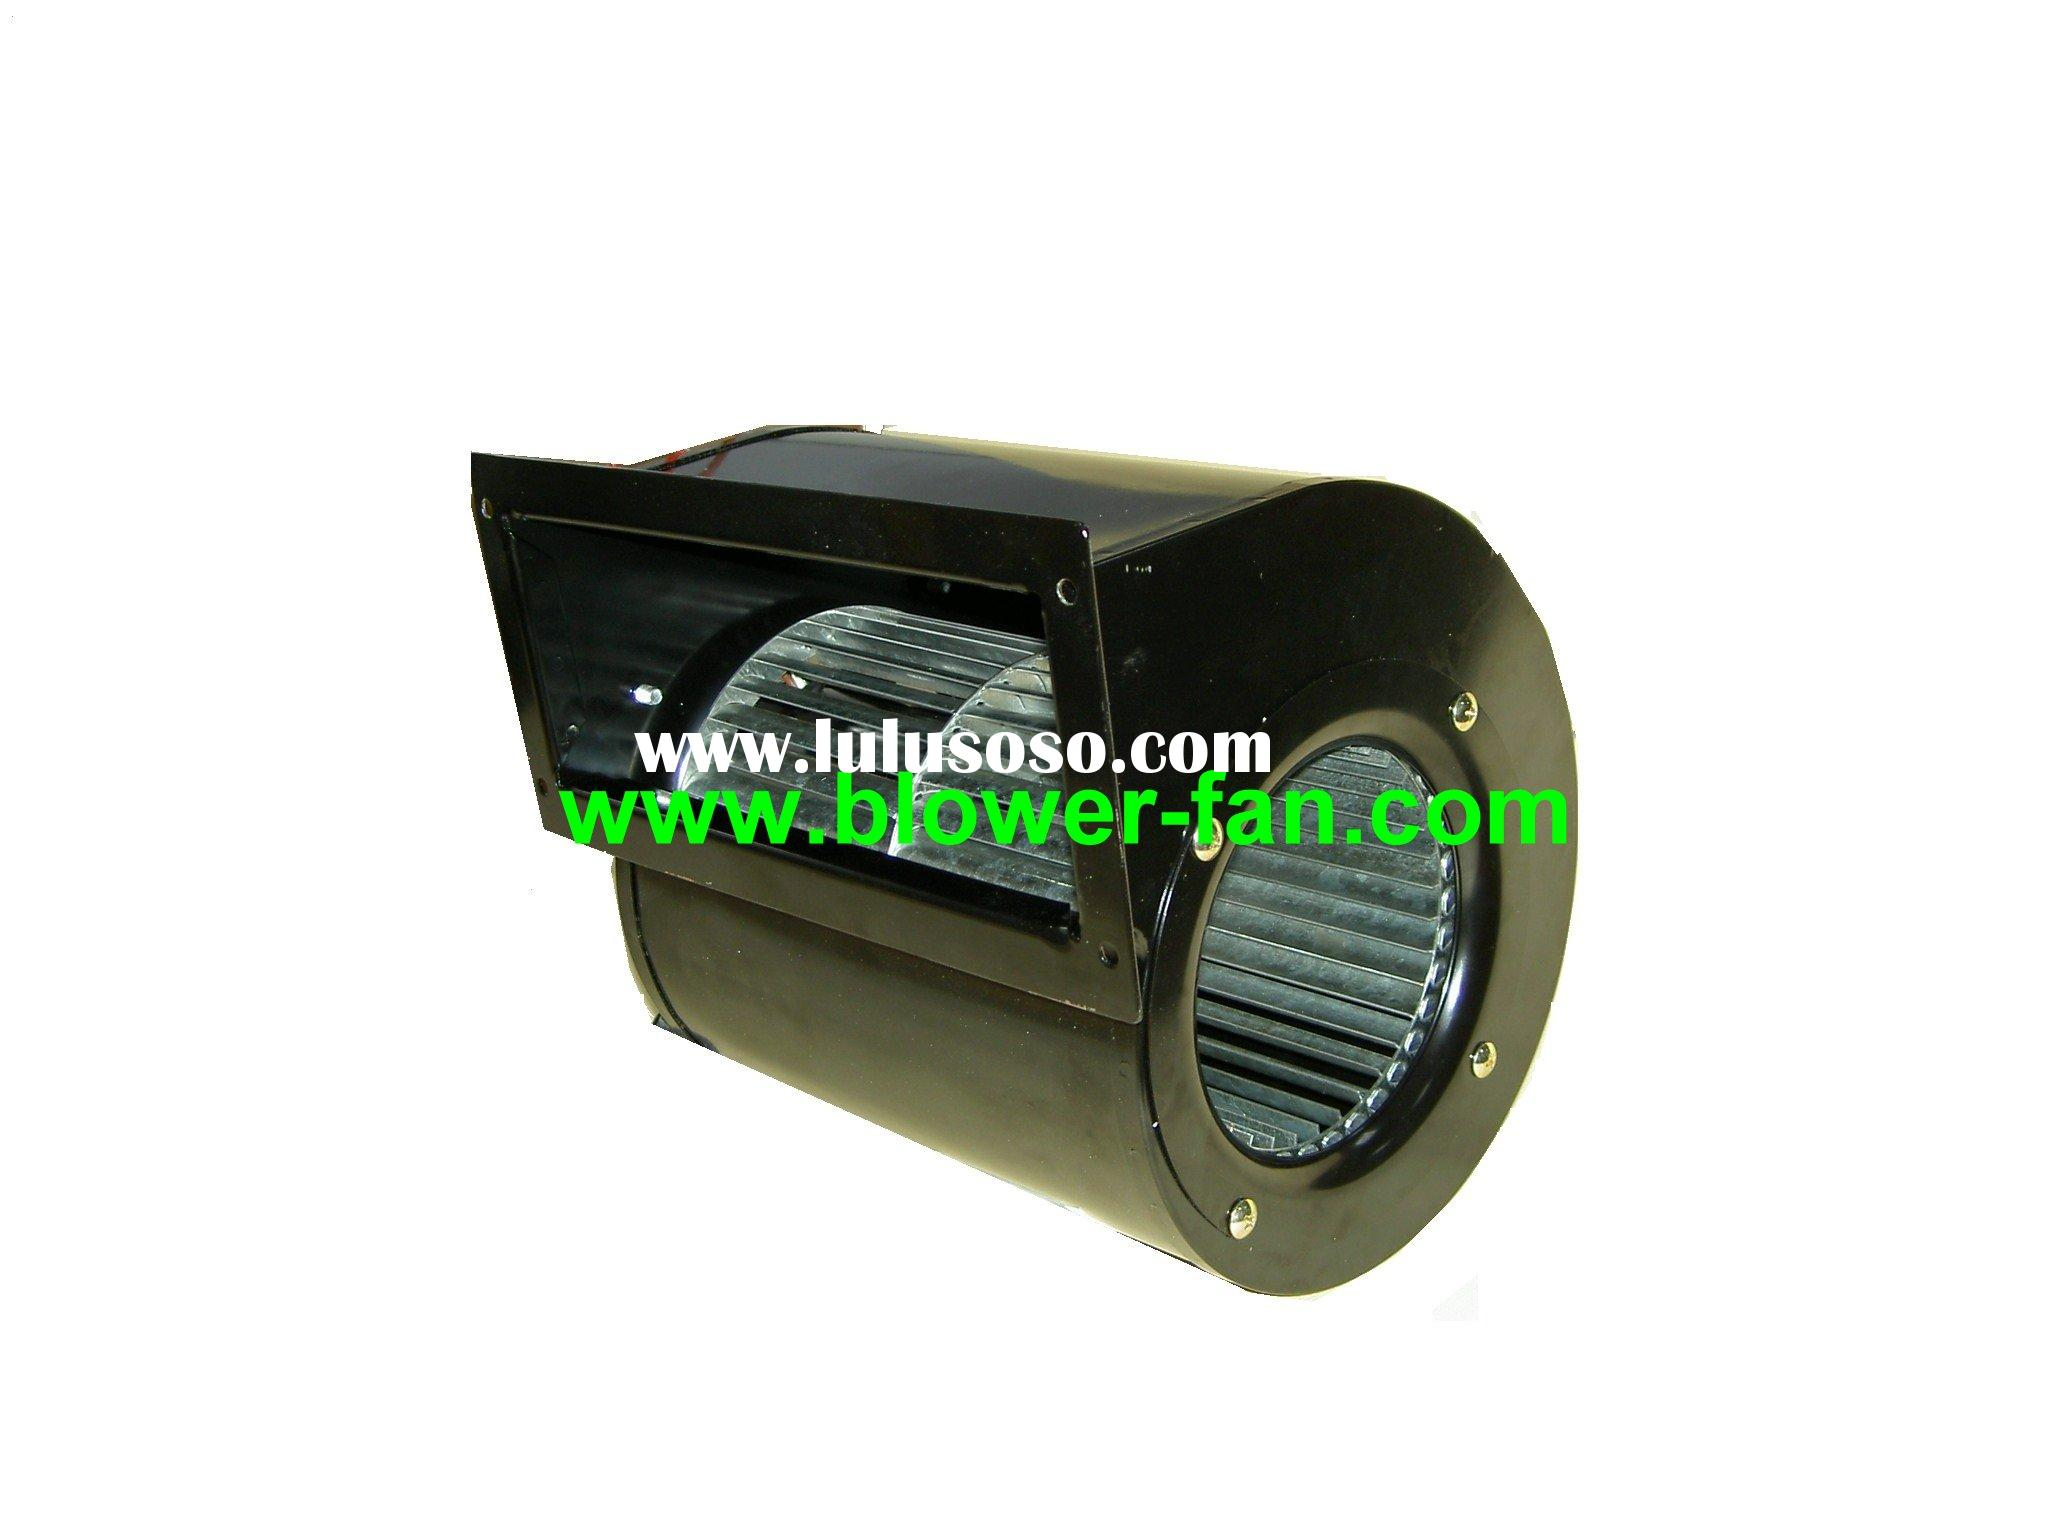 Furnace Blower, Blower For Air Conditioner